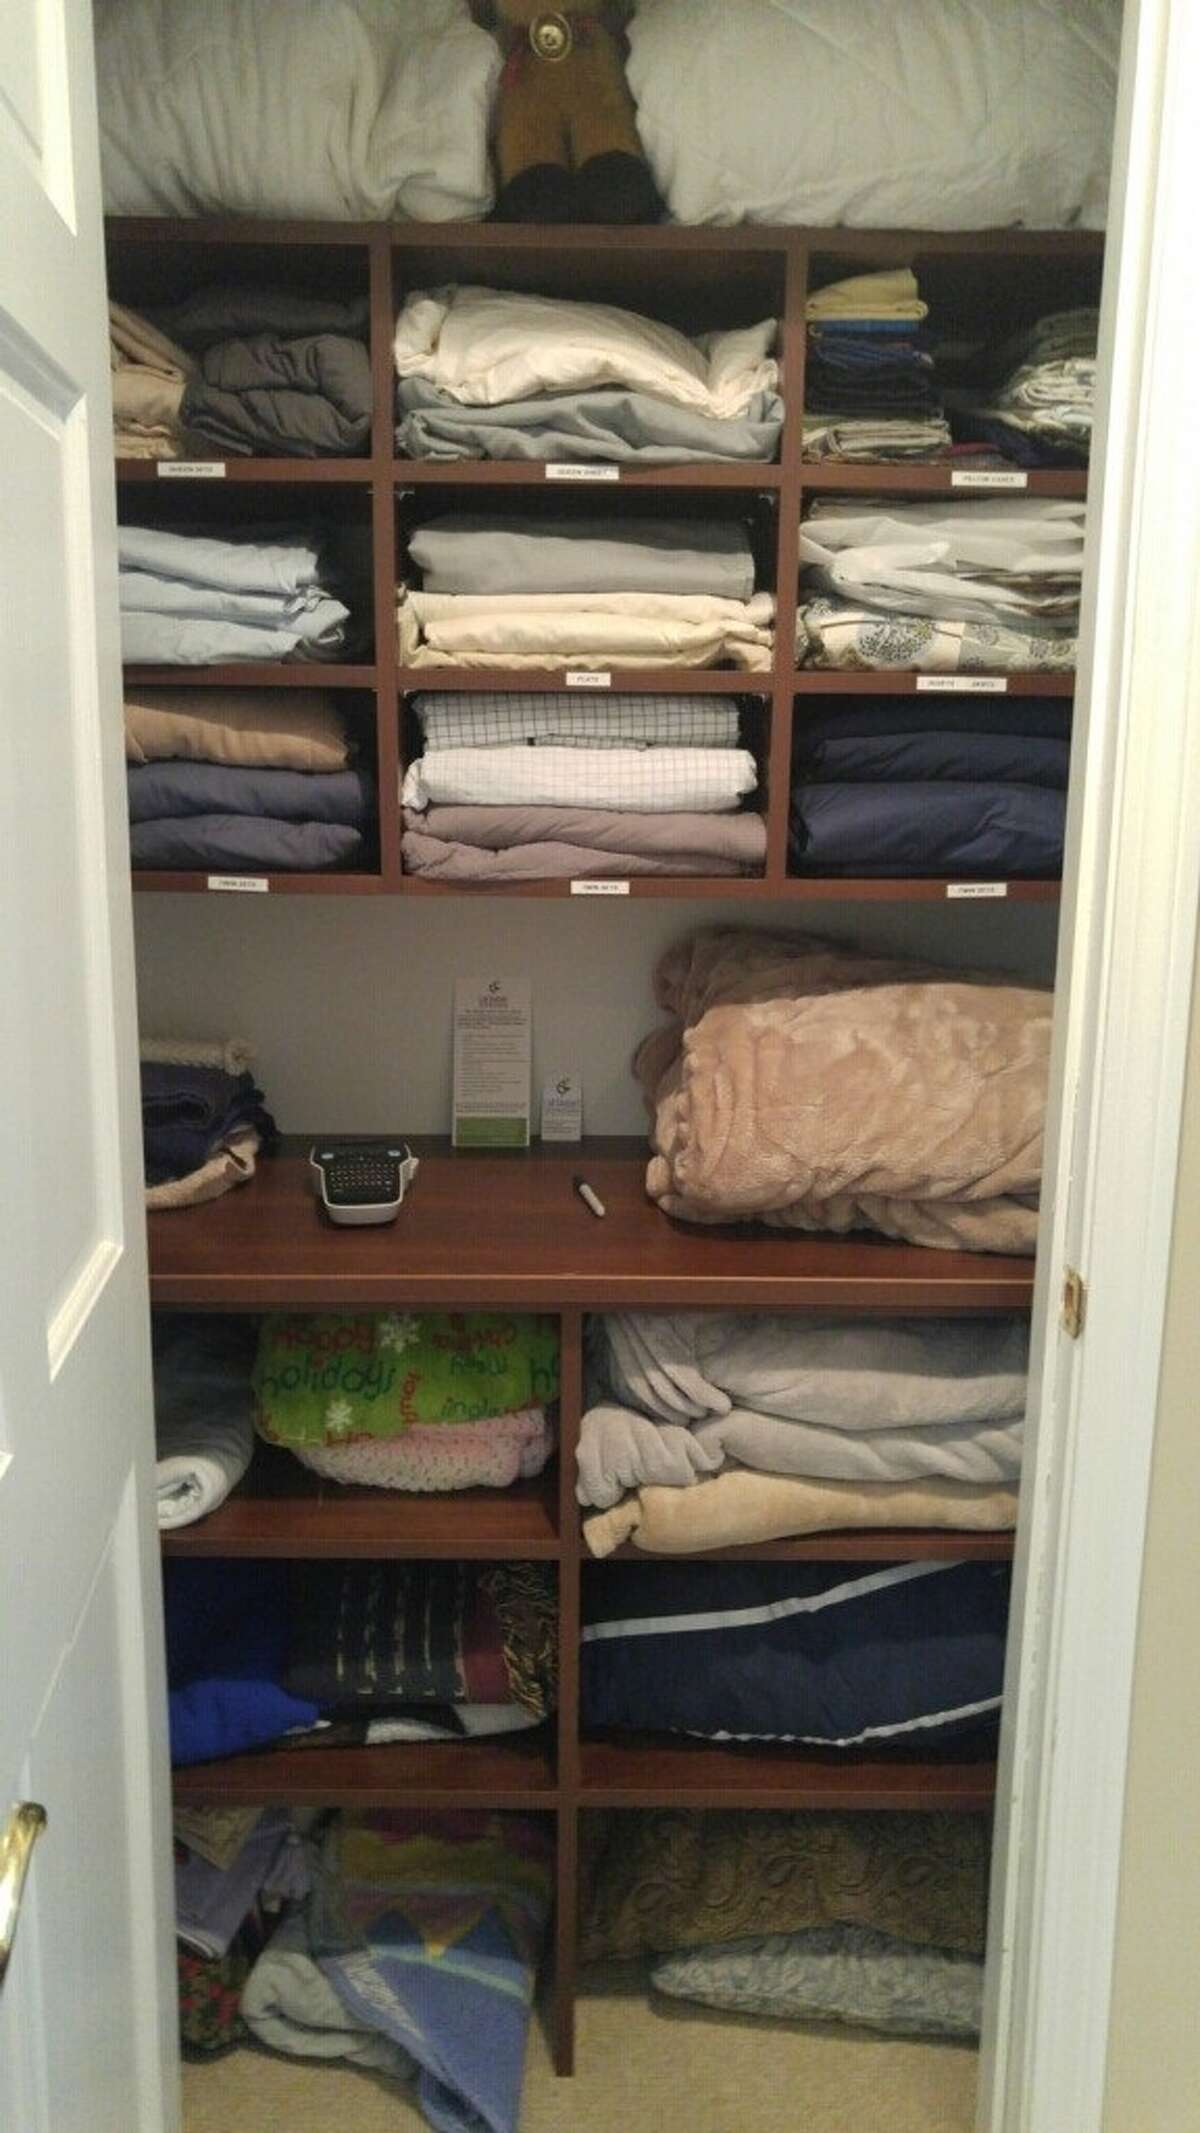 Even simply reorganizing a linen closet can clear your mind, according to Sheilah Sable, a personal concierge who owns the Call Shielah! service.